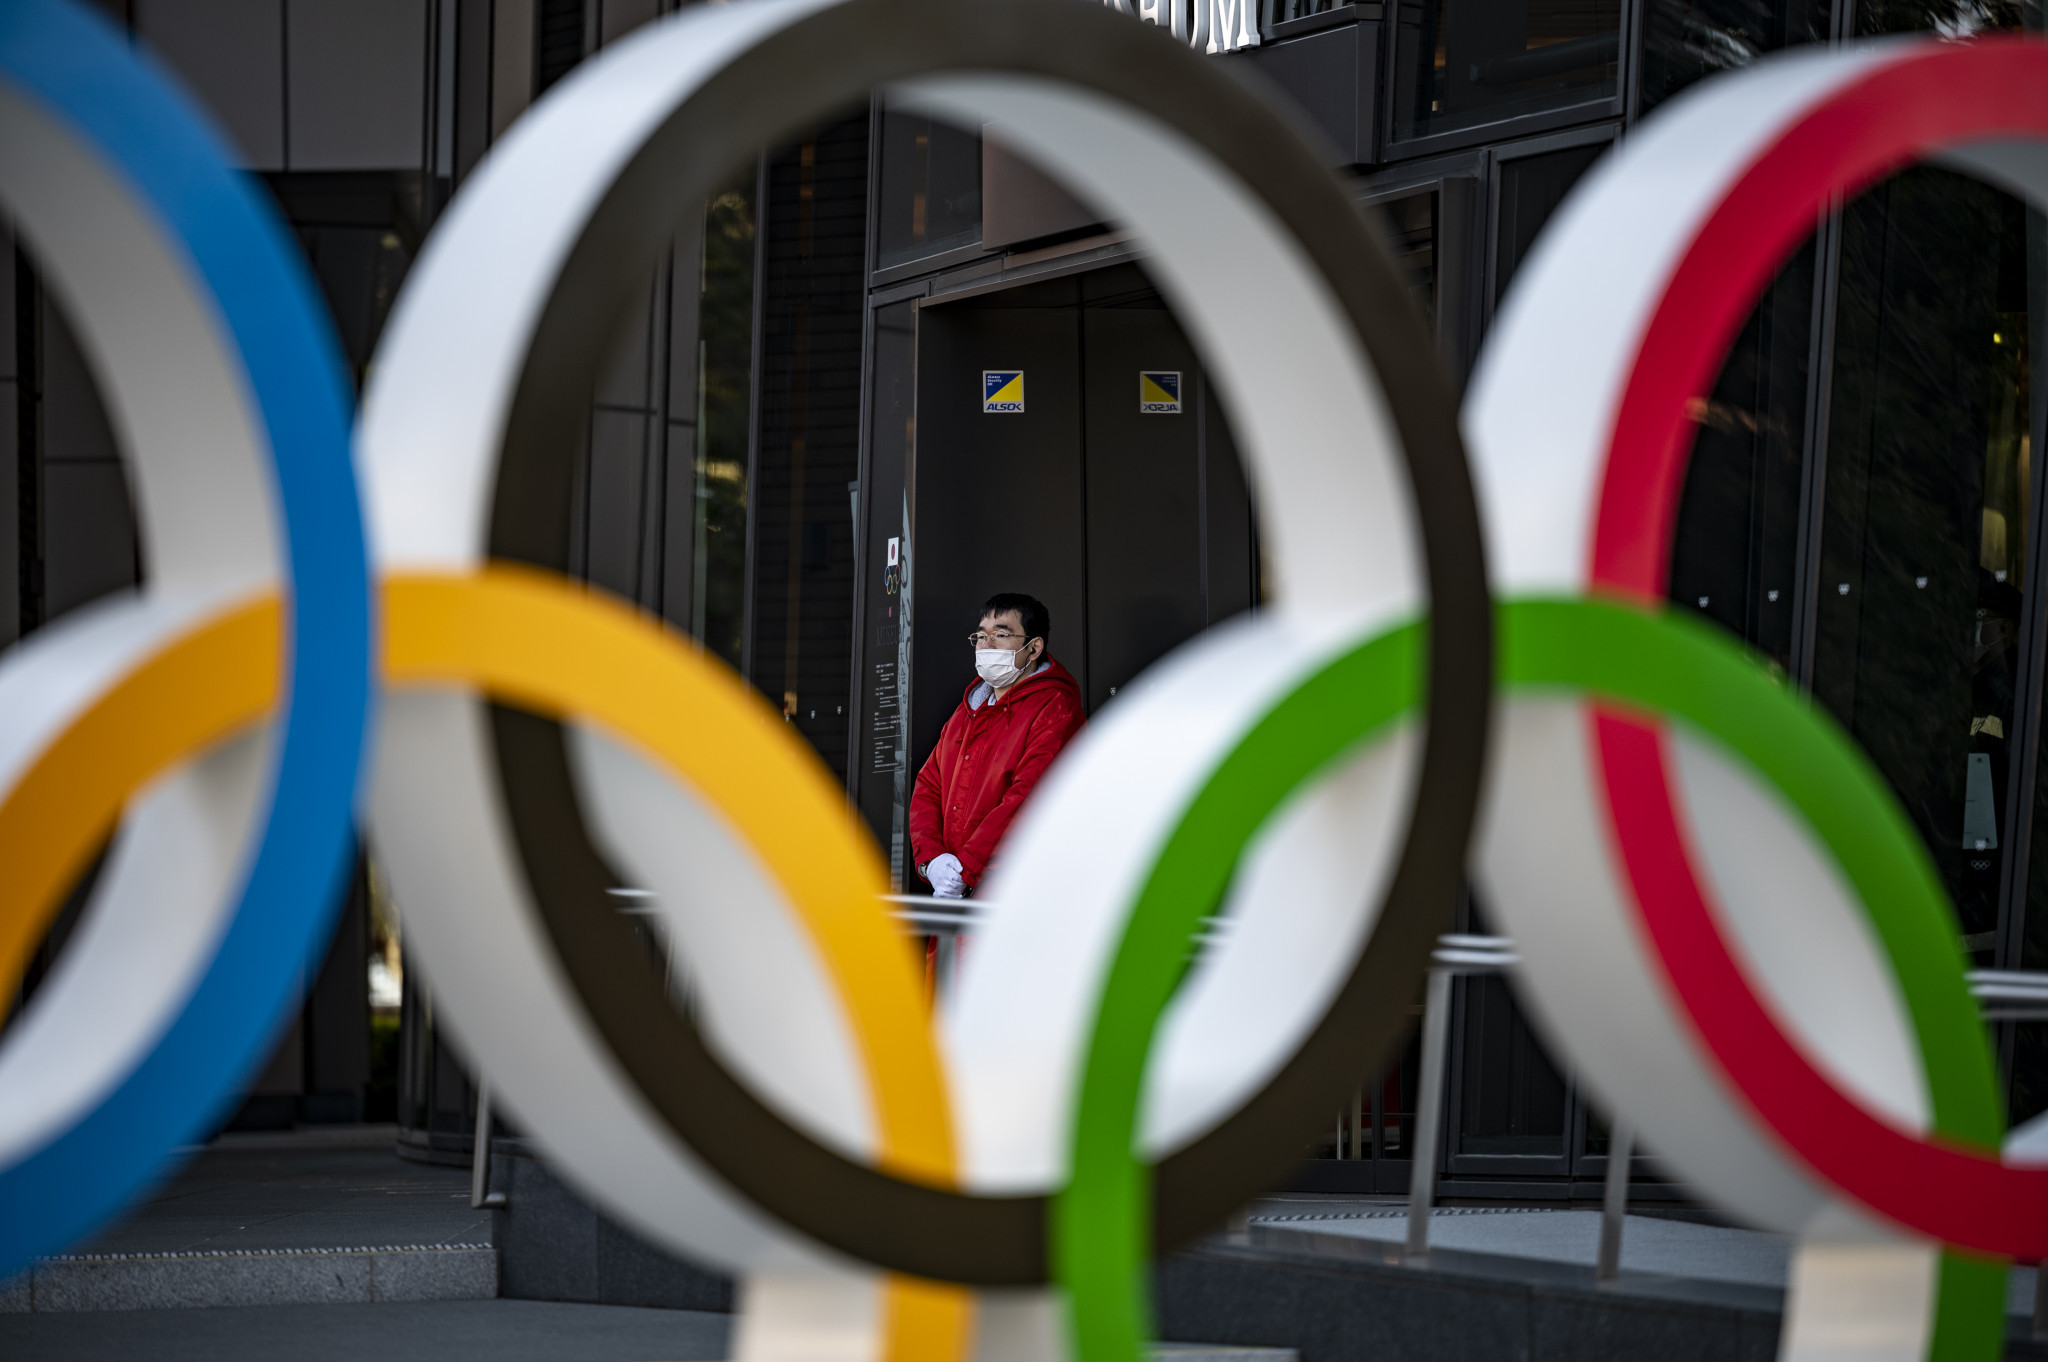 Olympic and Paralympic host city Tokyo is currently in a state of emergency as it battles the COVID-19 pandemic ©Getty Images